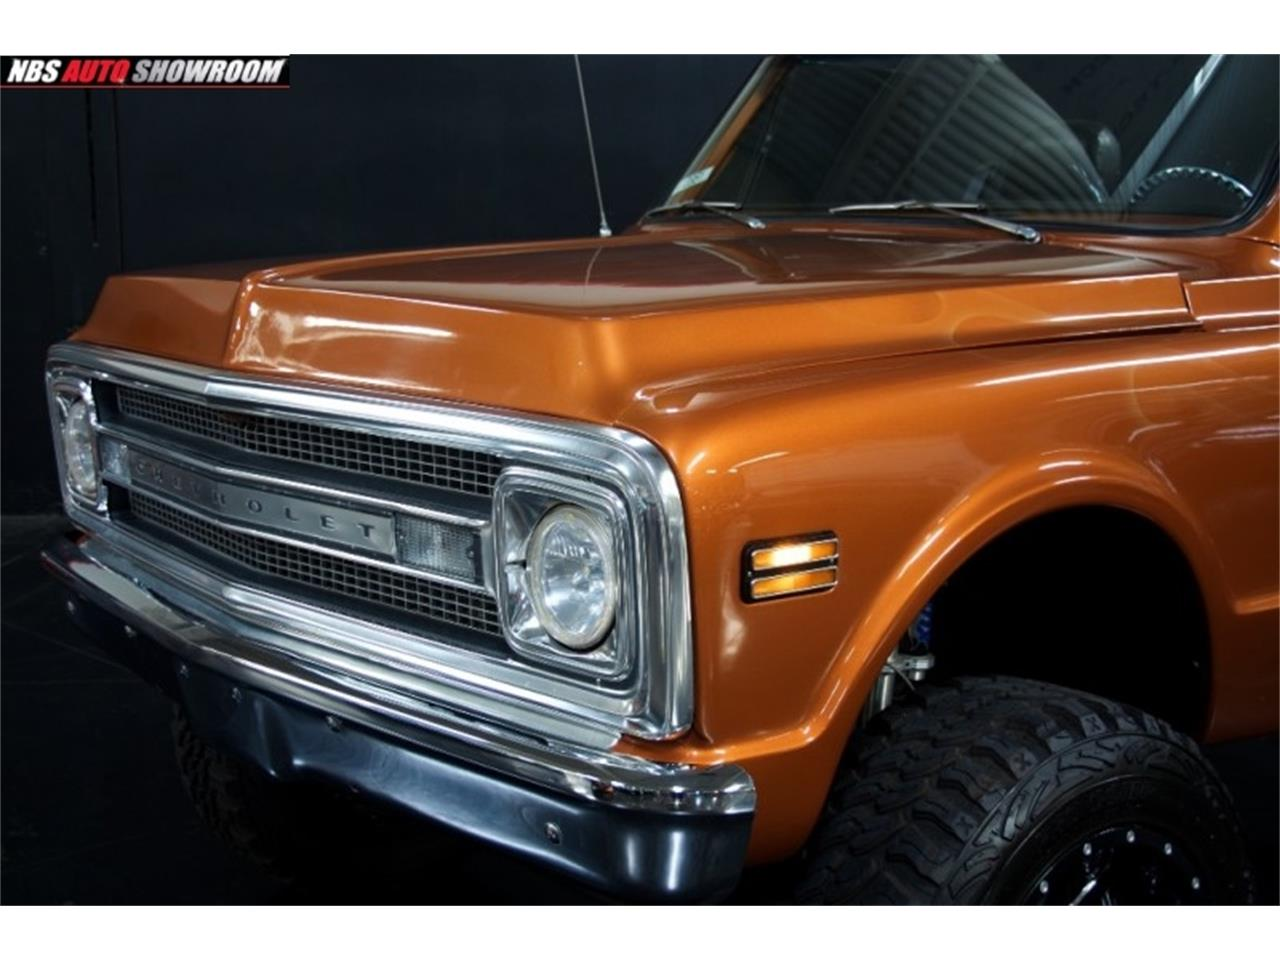 Large Picture of '70 Blazer located in Milpitas California - $55,250.00 Offered by NBS Auto Showroom - PR1D